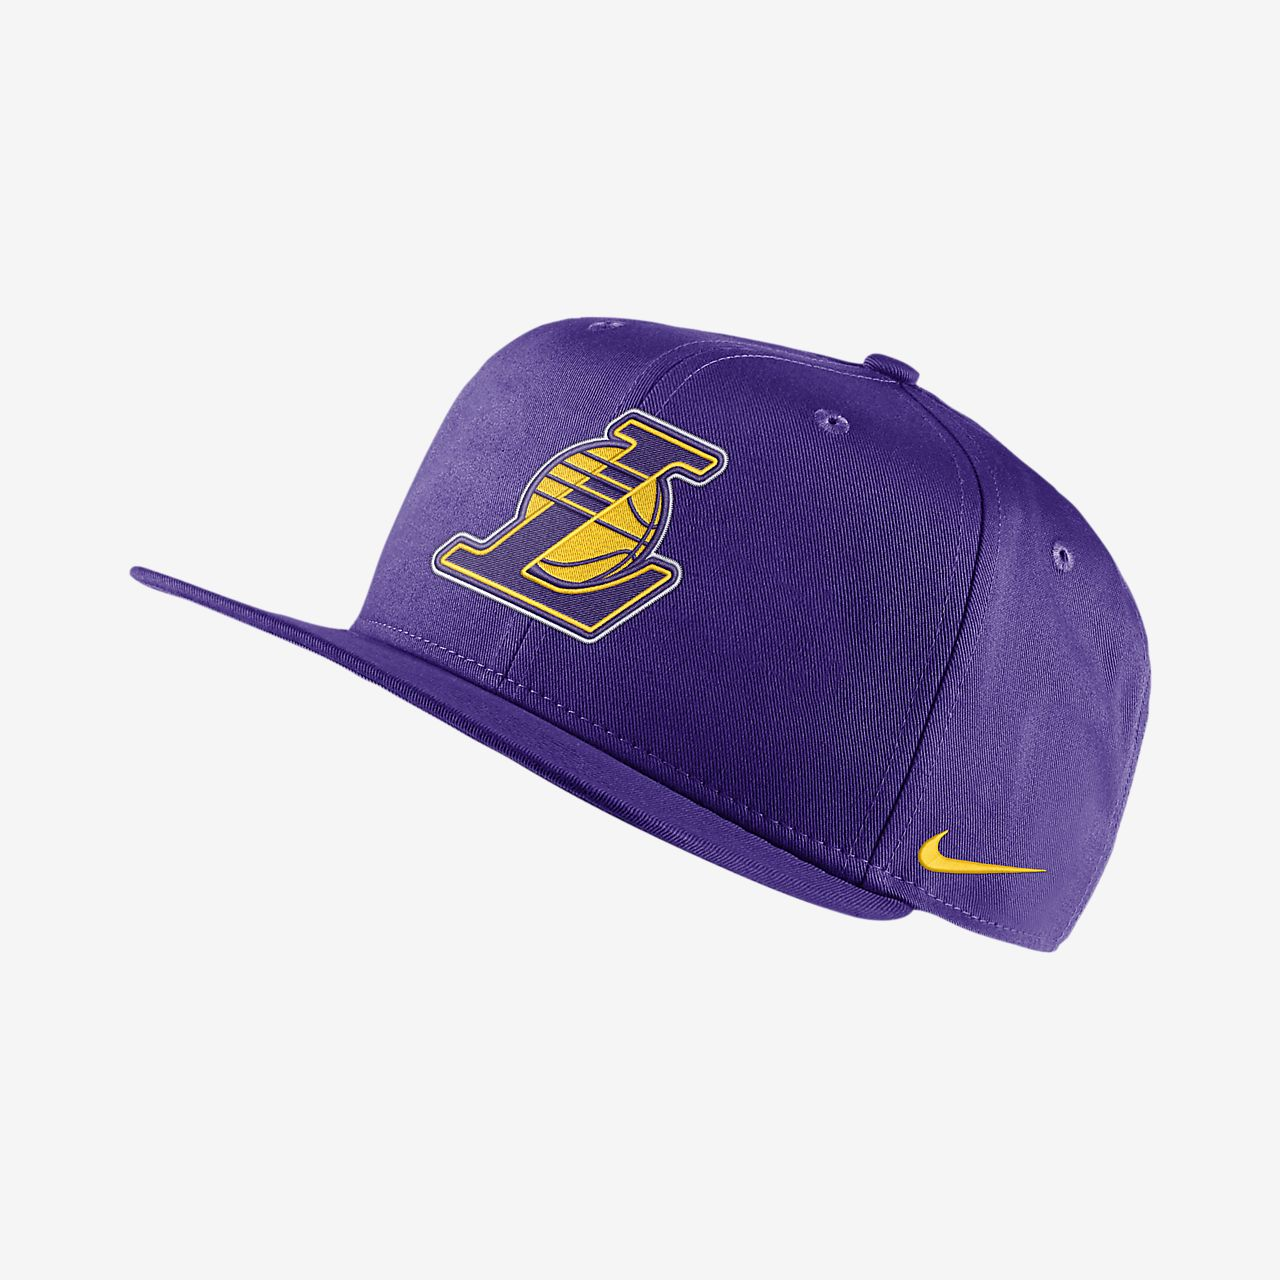 Los Angeles Lakers Nike Pro NBA-pet